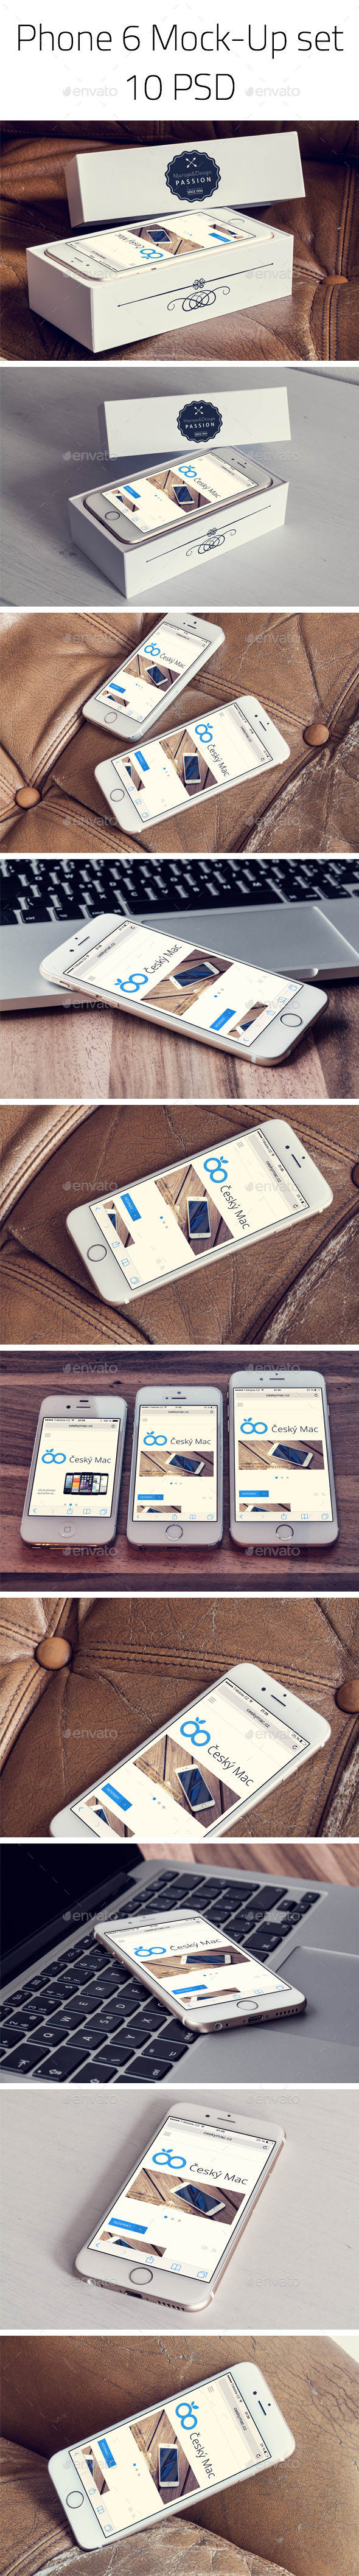 Phone 6 Photorealistic Mock-Up set